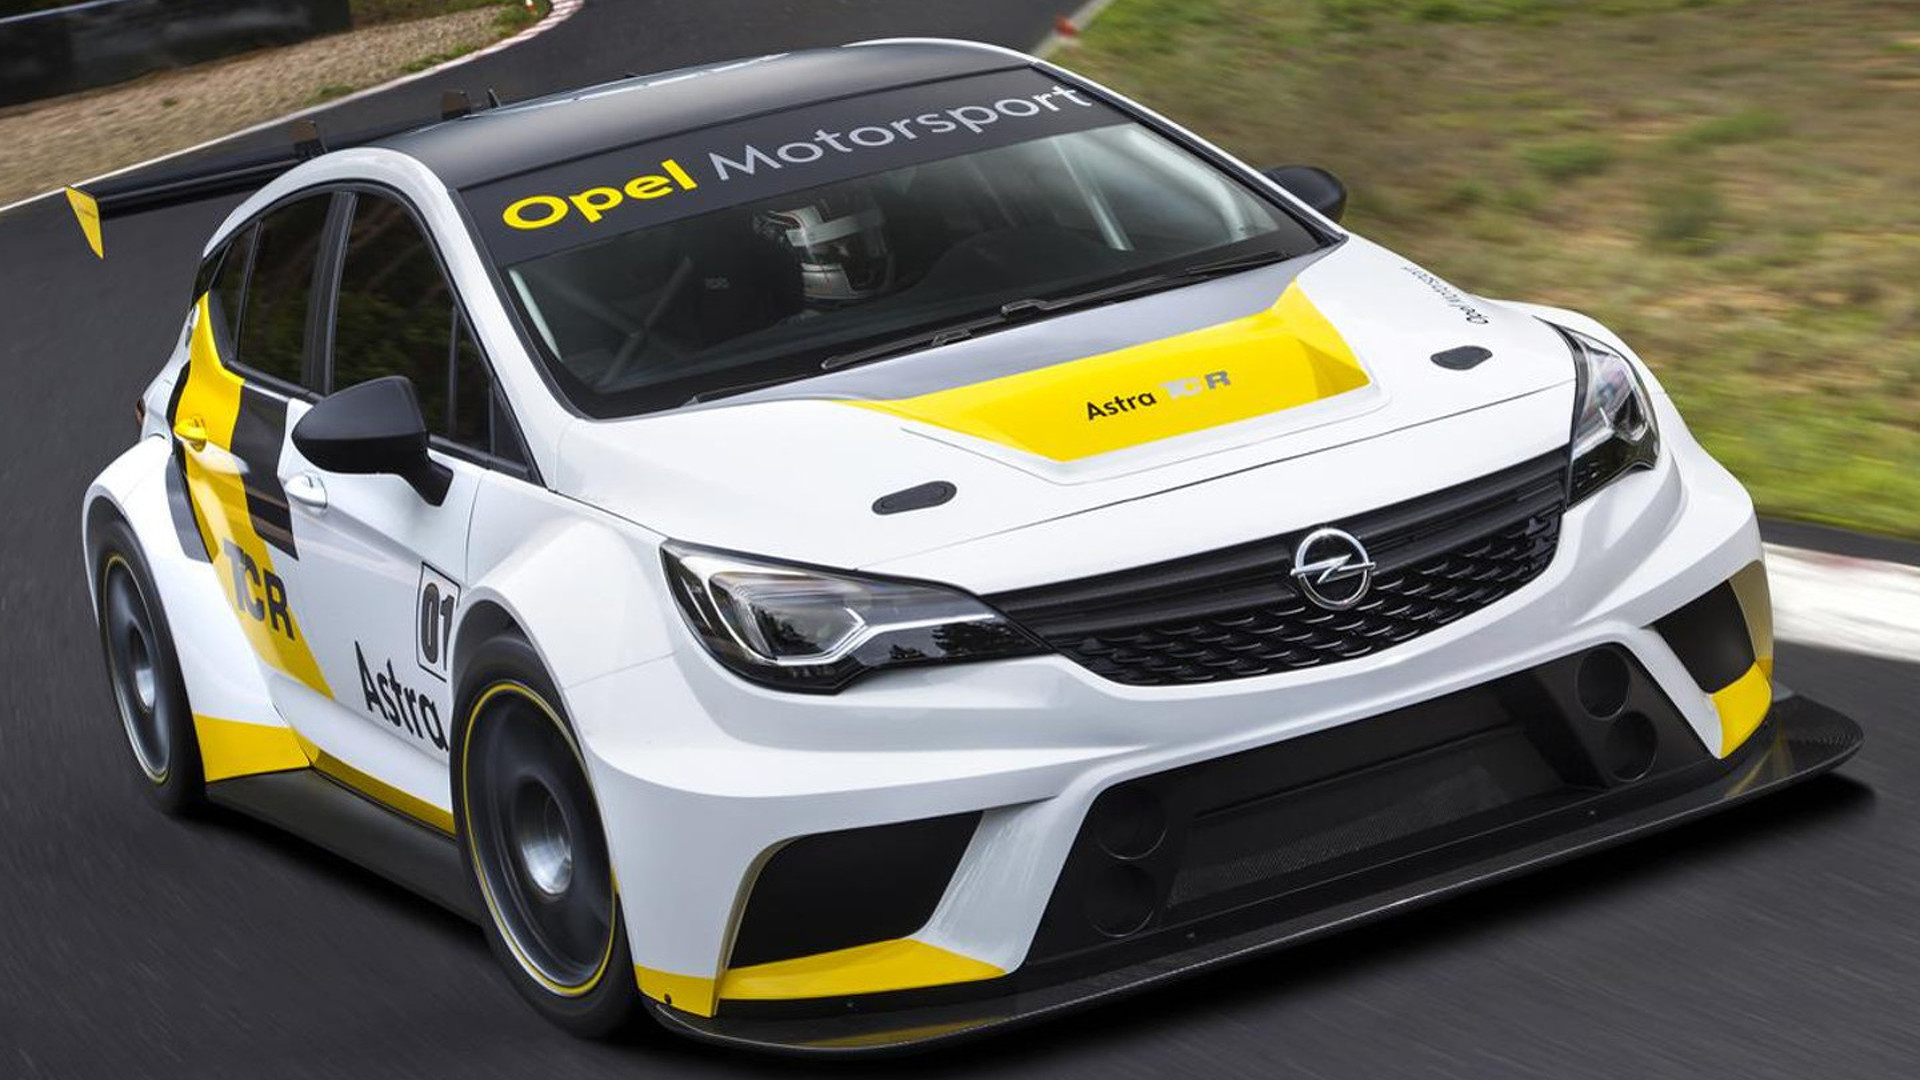 Opel Astra TCR racecar goes official with 330 PS and €95,000 price tag